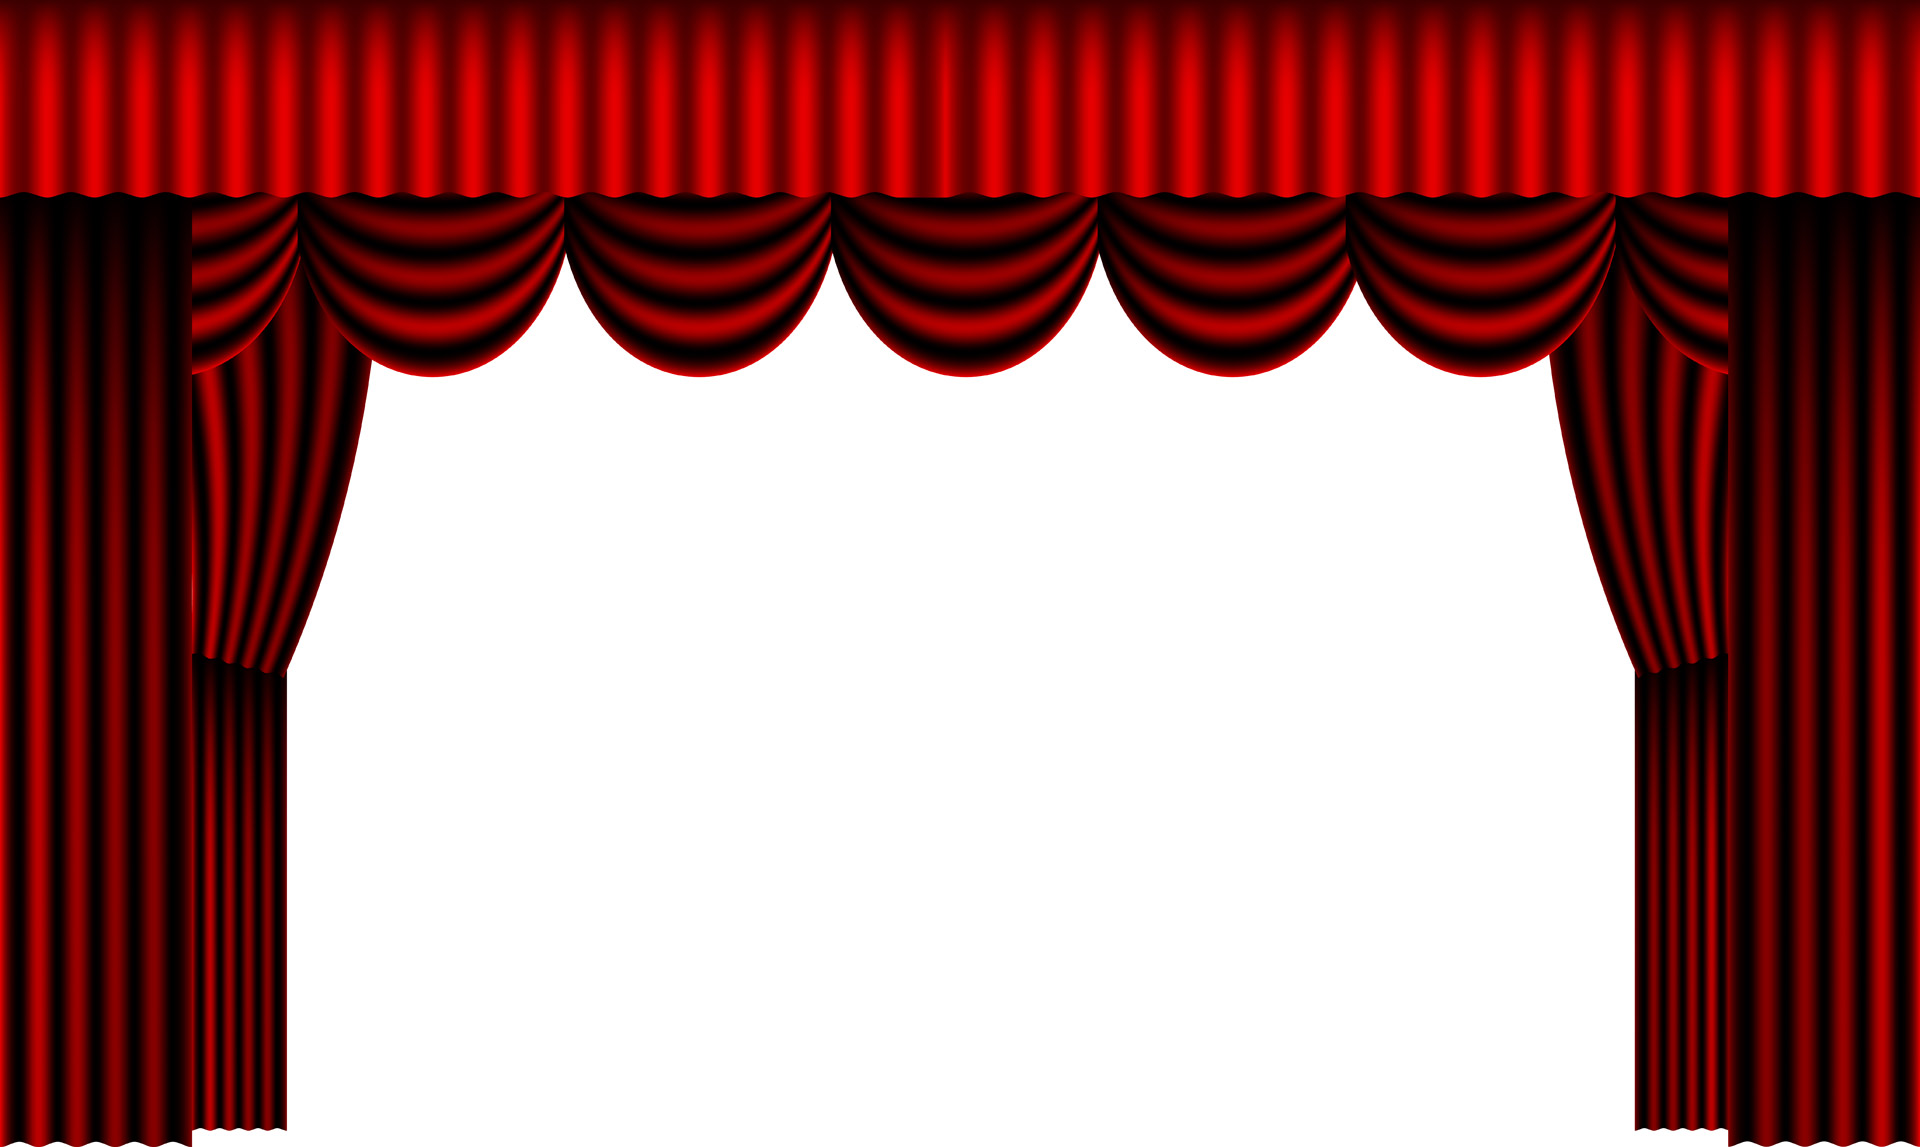 Red Theater Curtains Free Stock Photo Public Domain Pictures